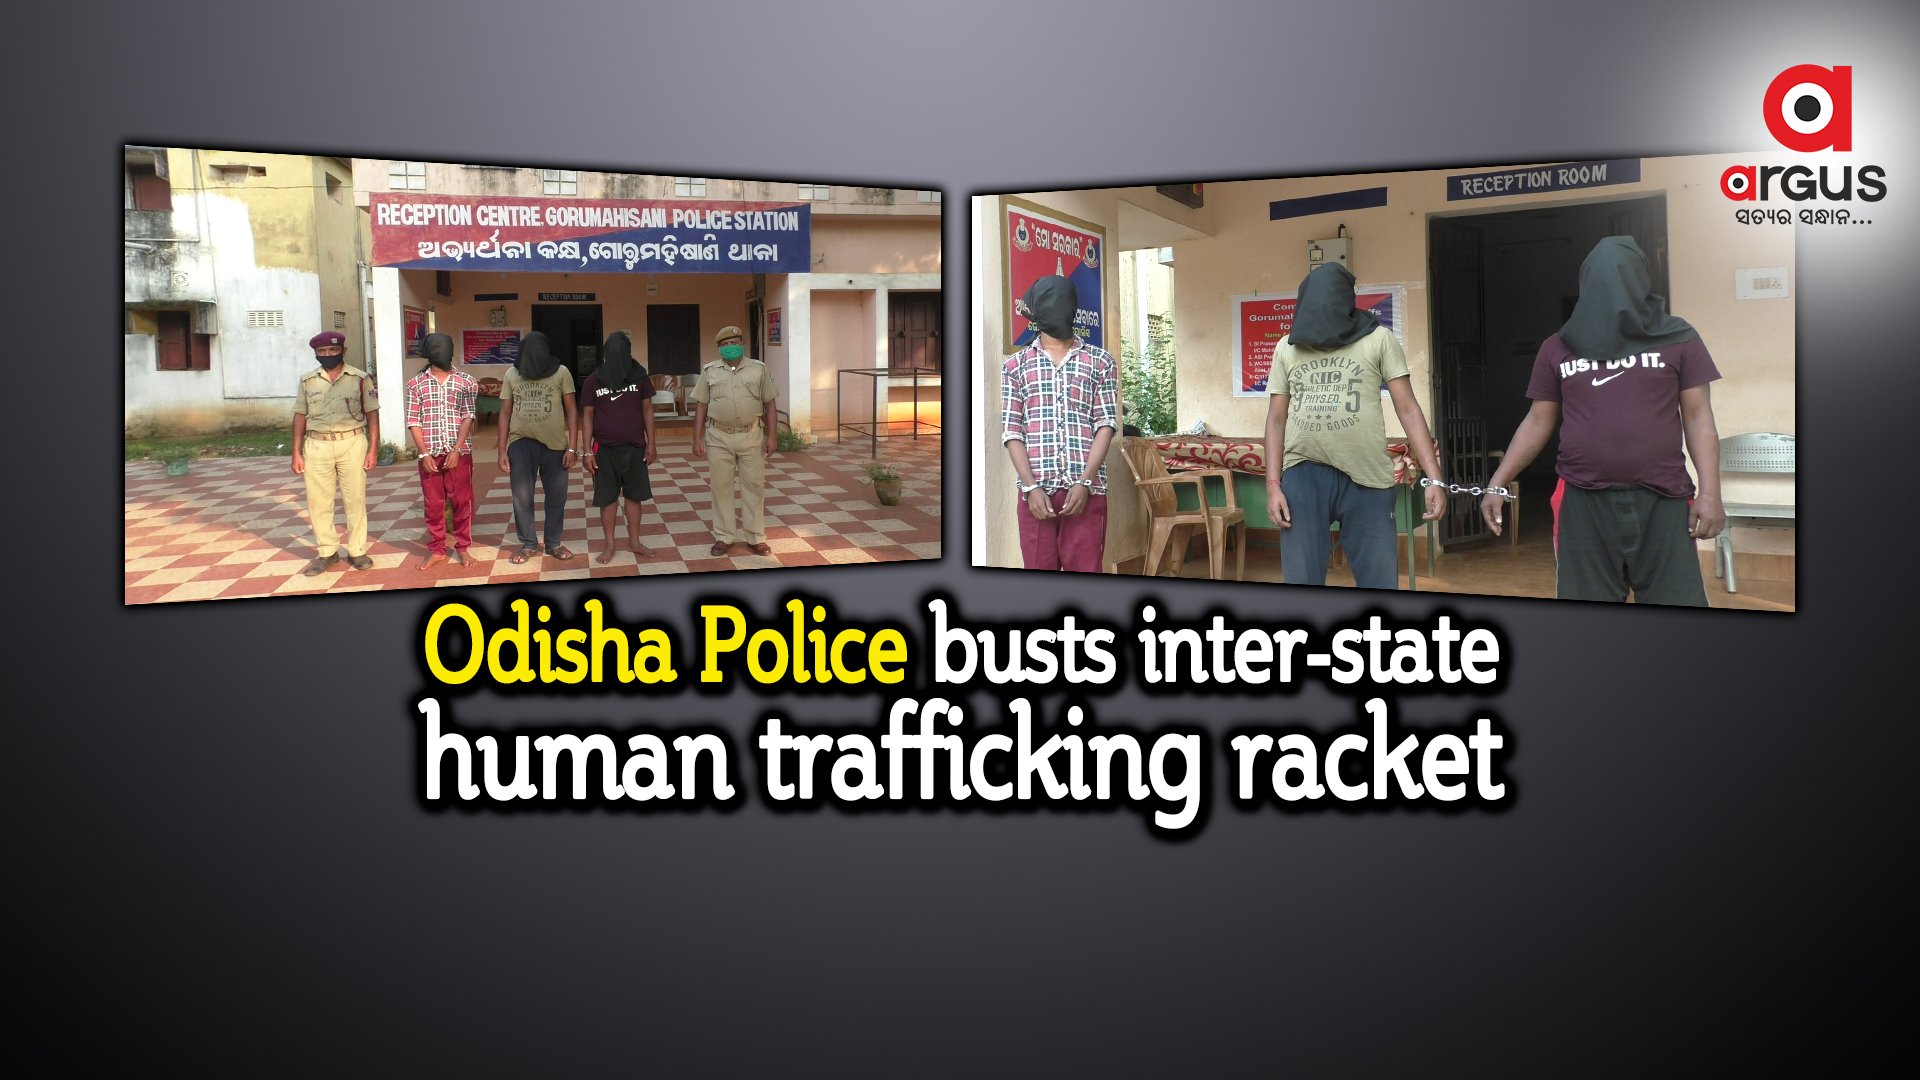 Odisha Police busts inter-state human trafficking racket, two girls rescued, 3 held